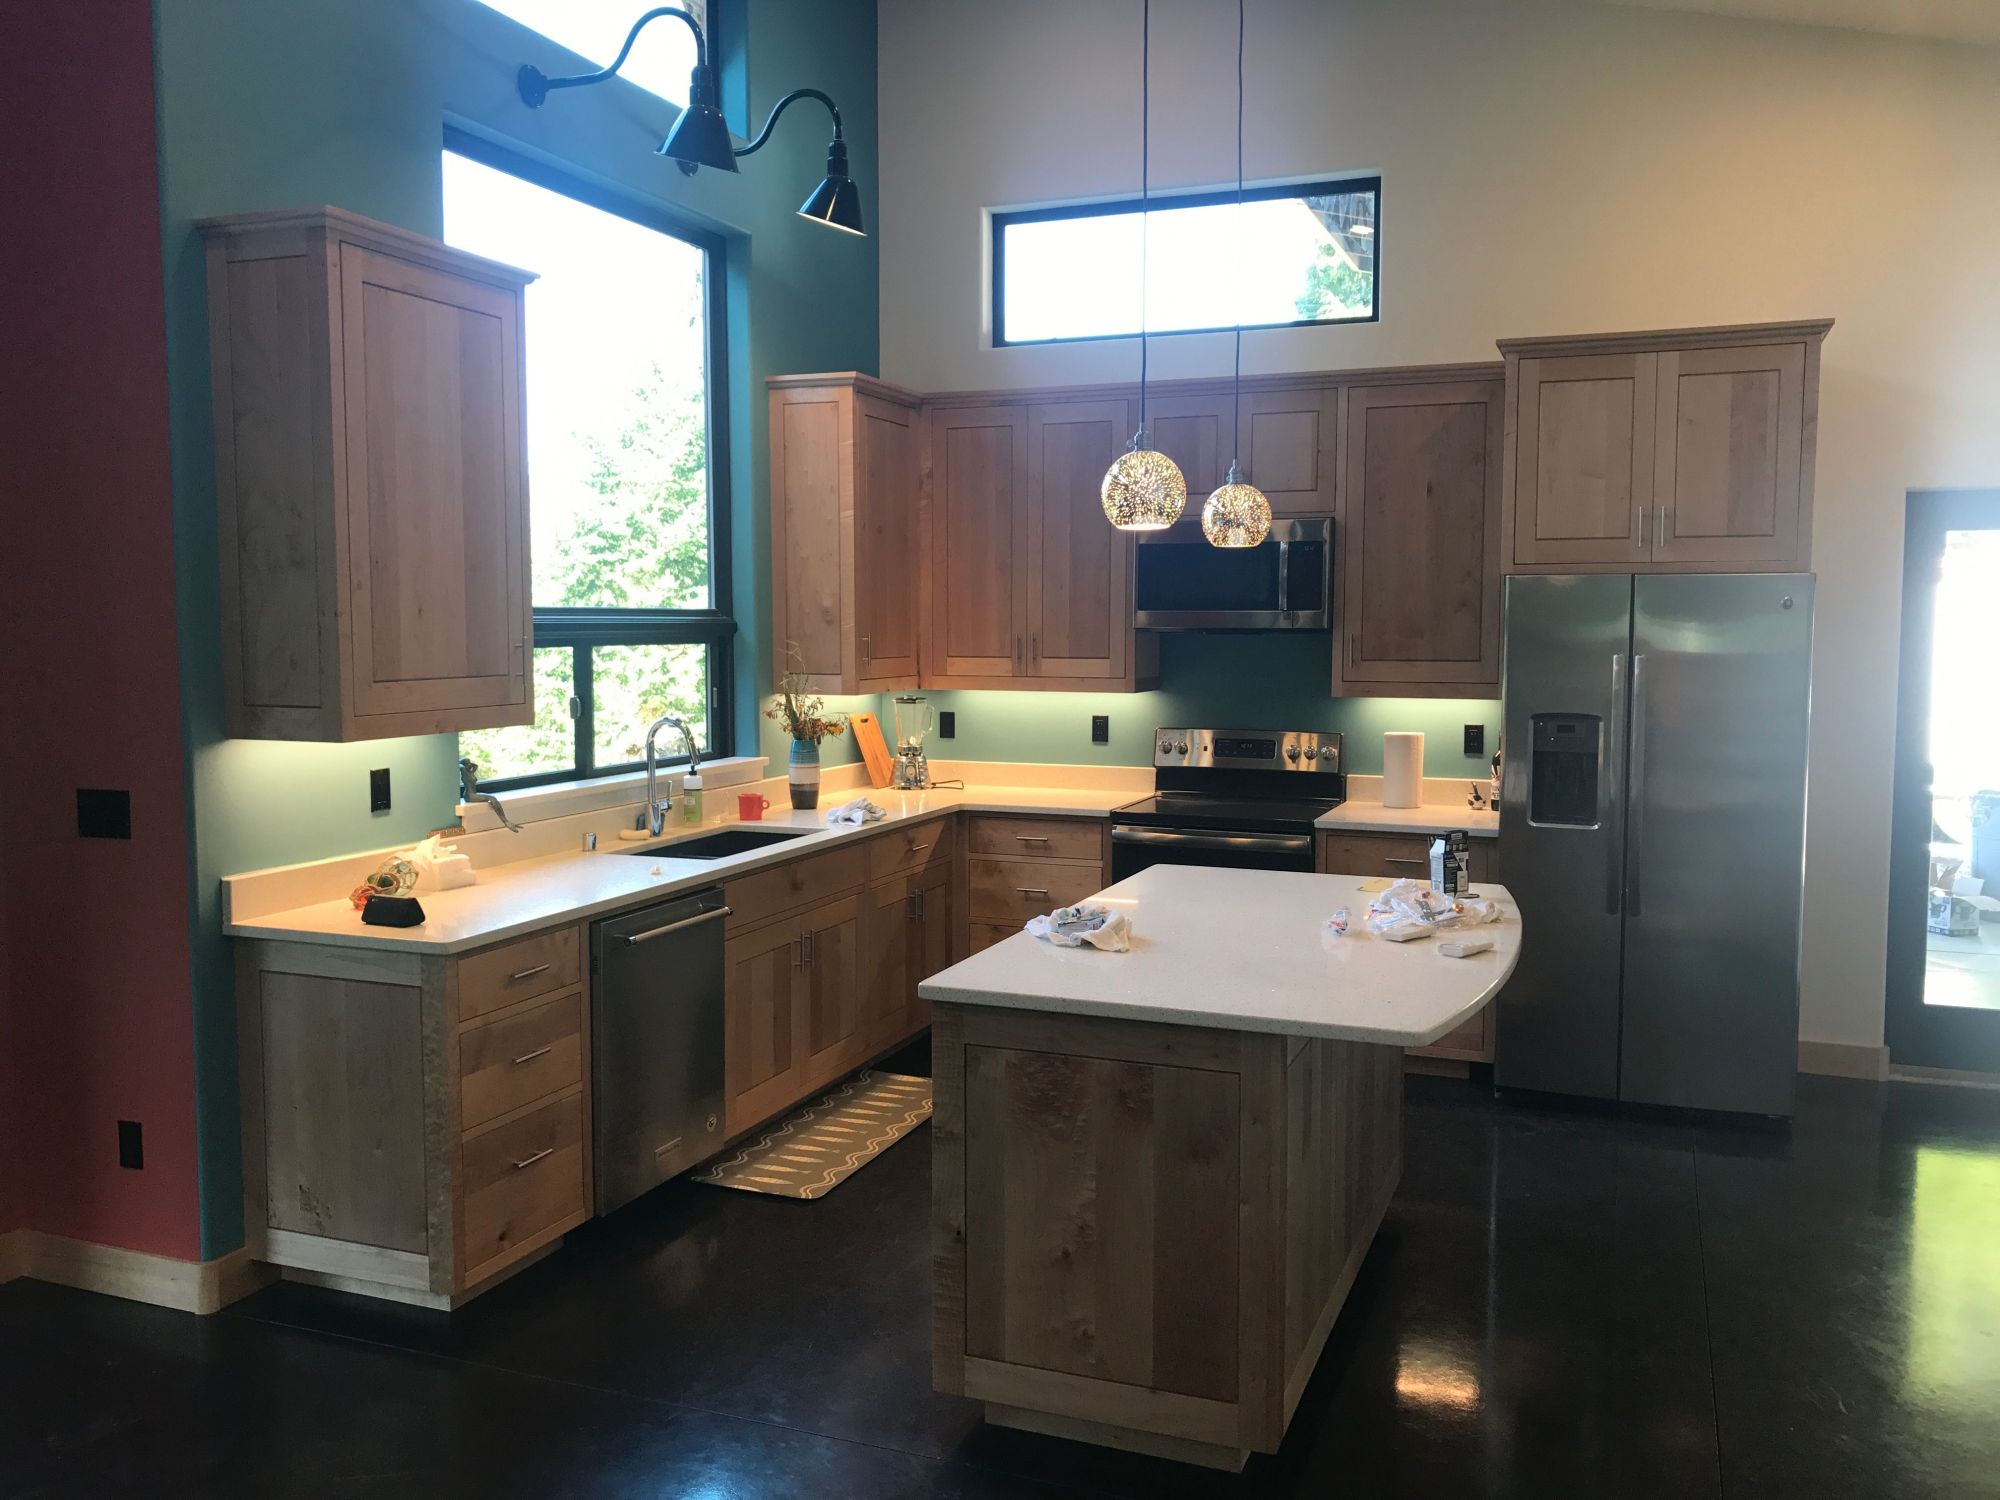 hight resolution of kitchen lighting in a craftsman home